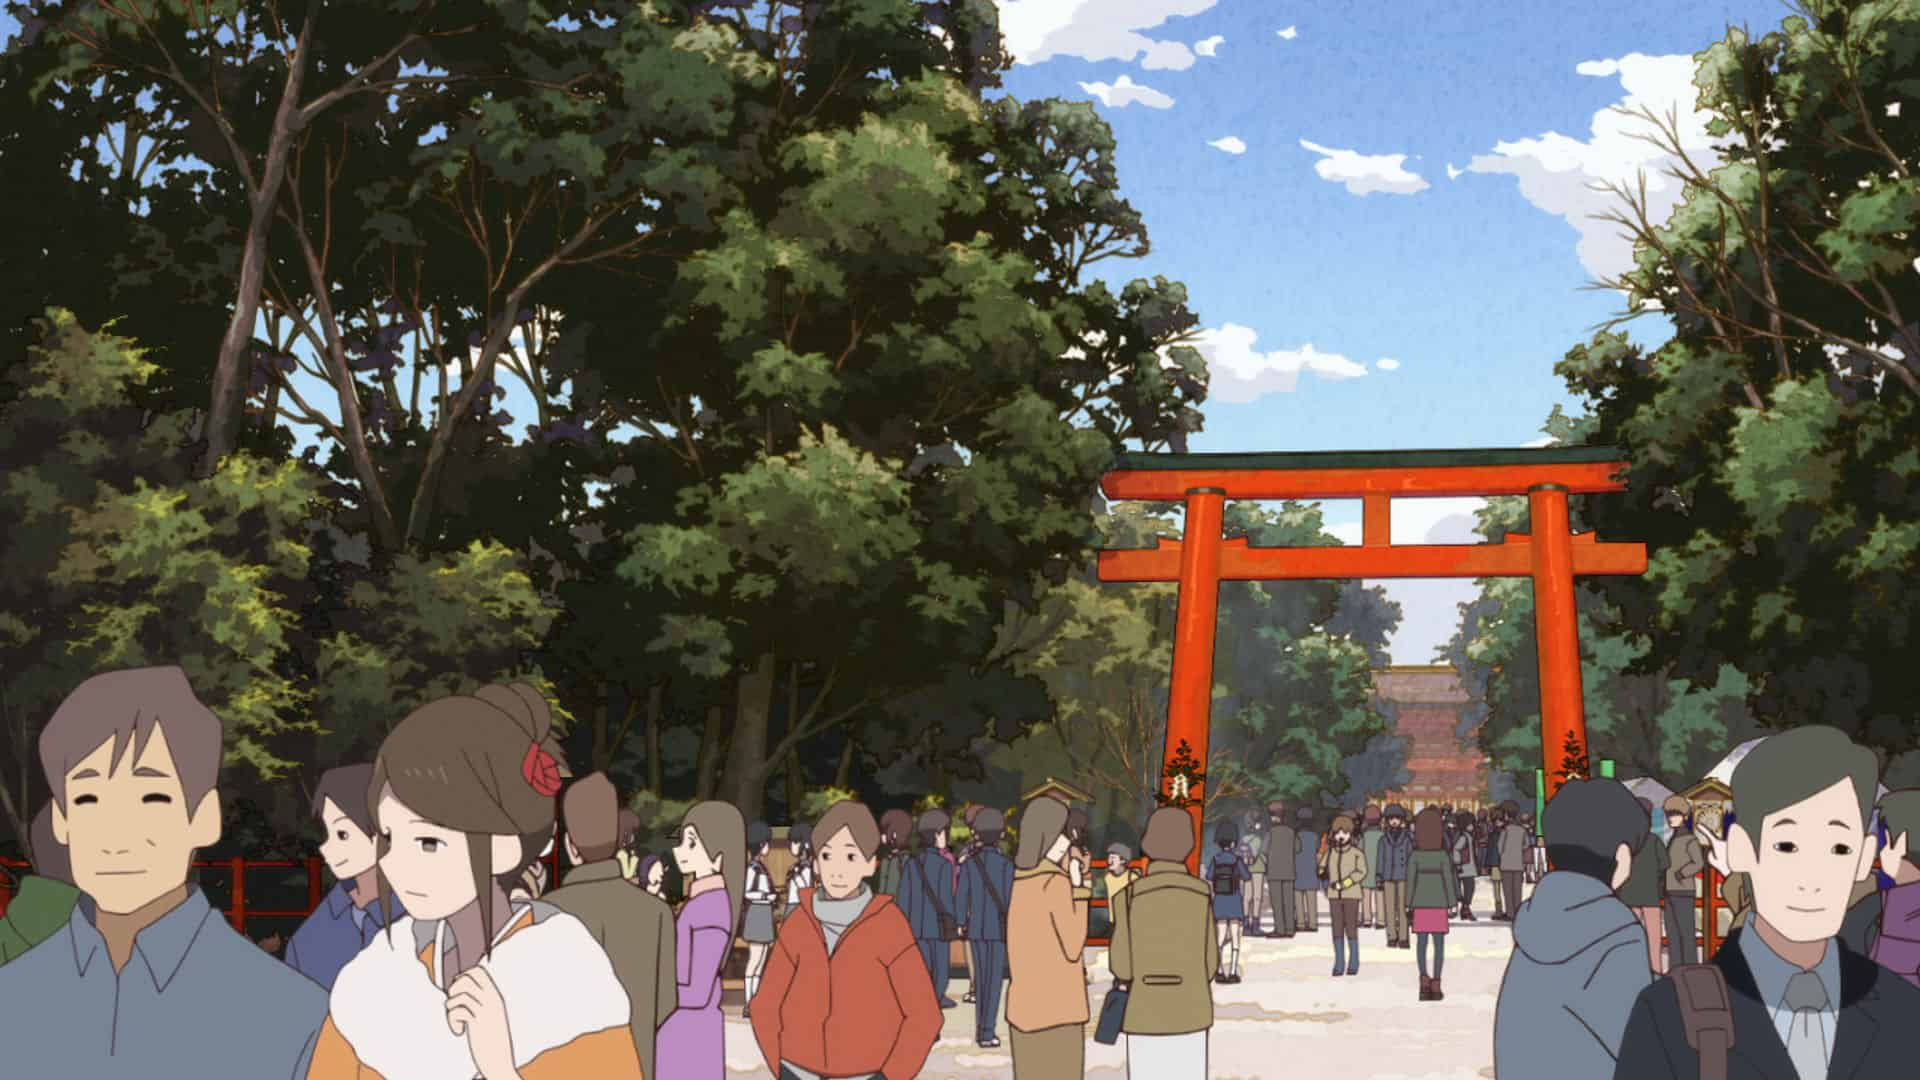 The Eccentric Family Staffel 1 Vol 2 Szenenbilder 08.72dpi